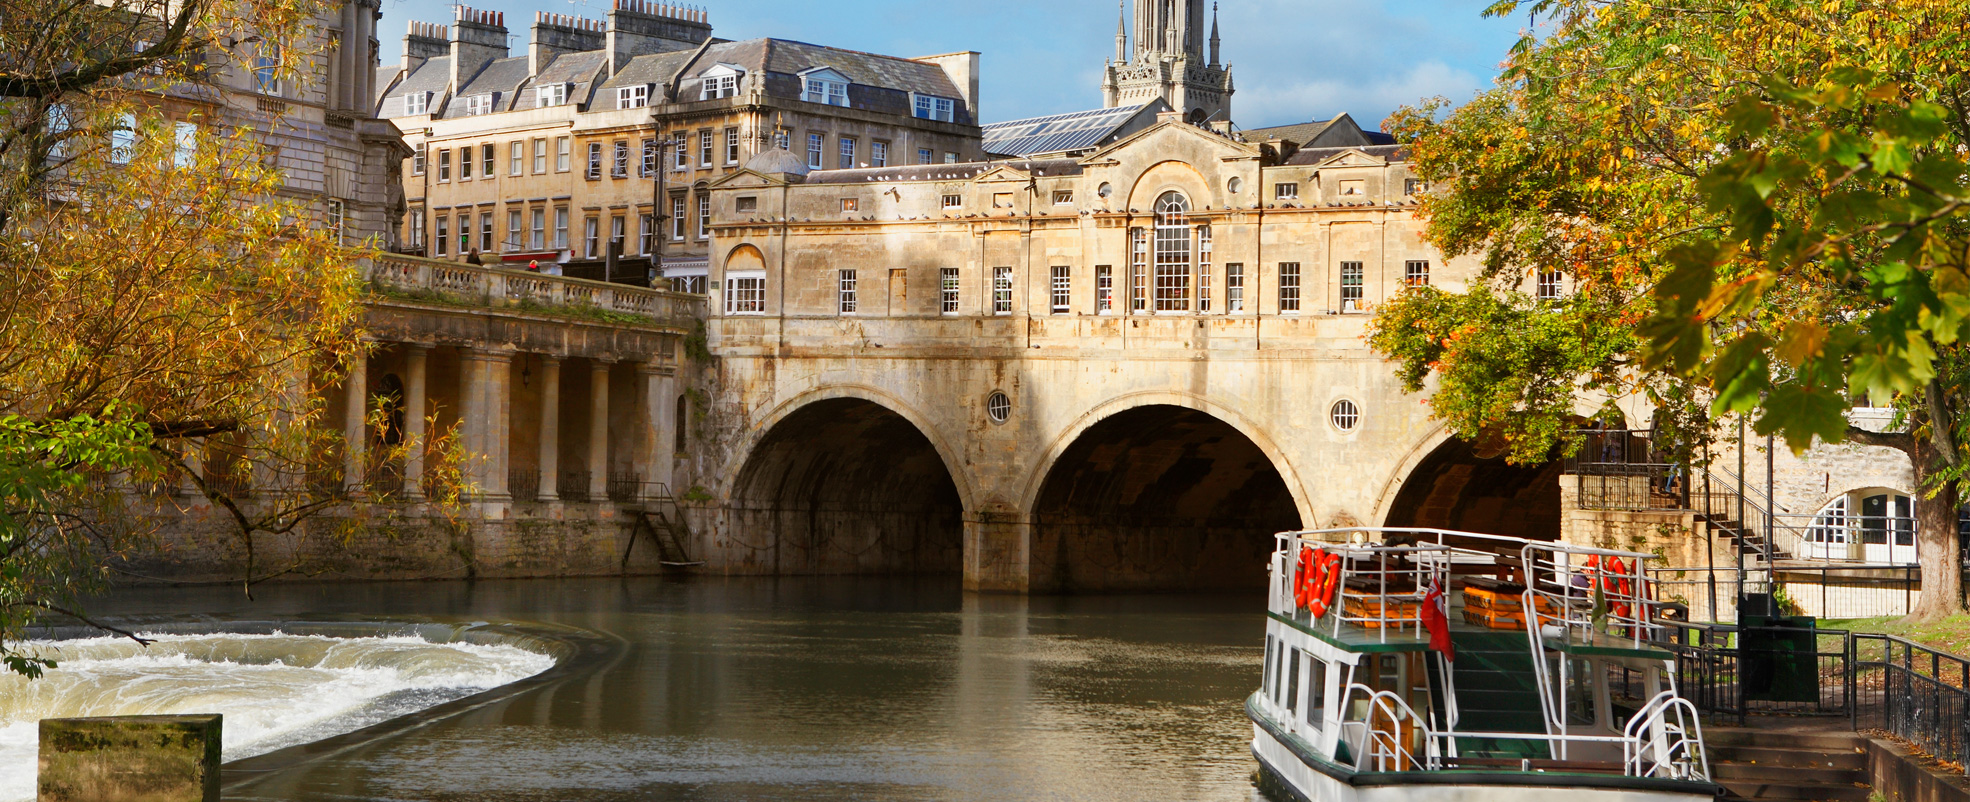 Residential lettings in Bath and the surrounding areas